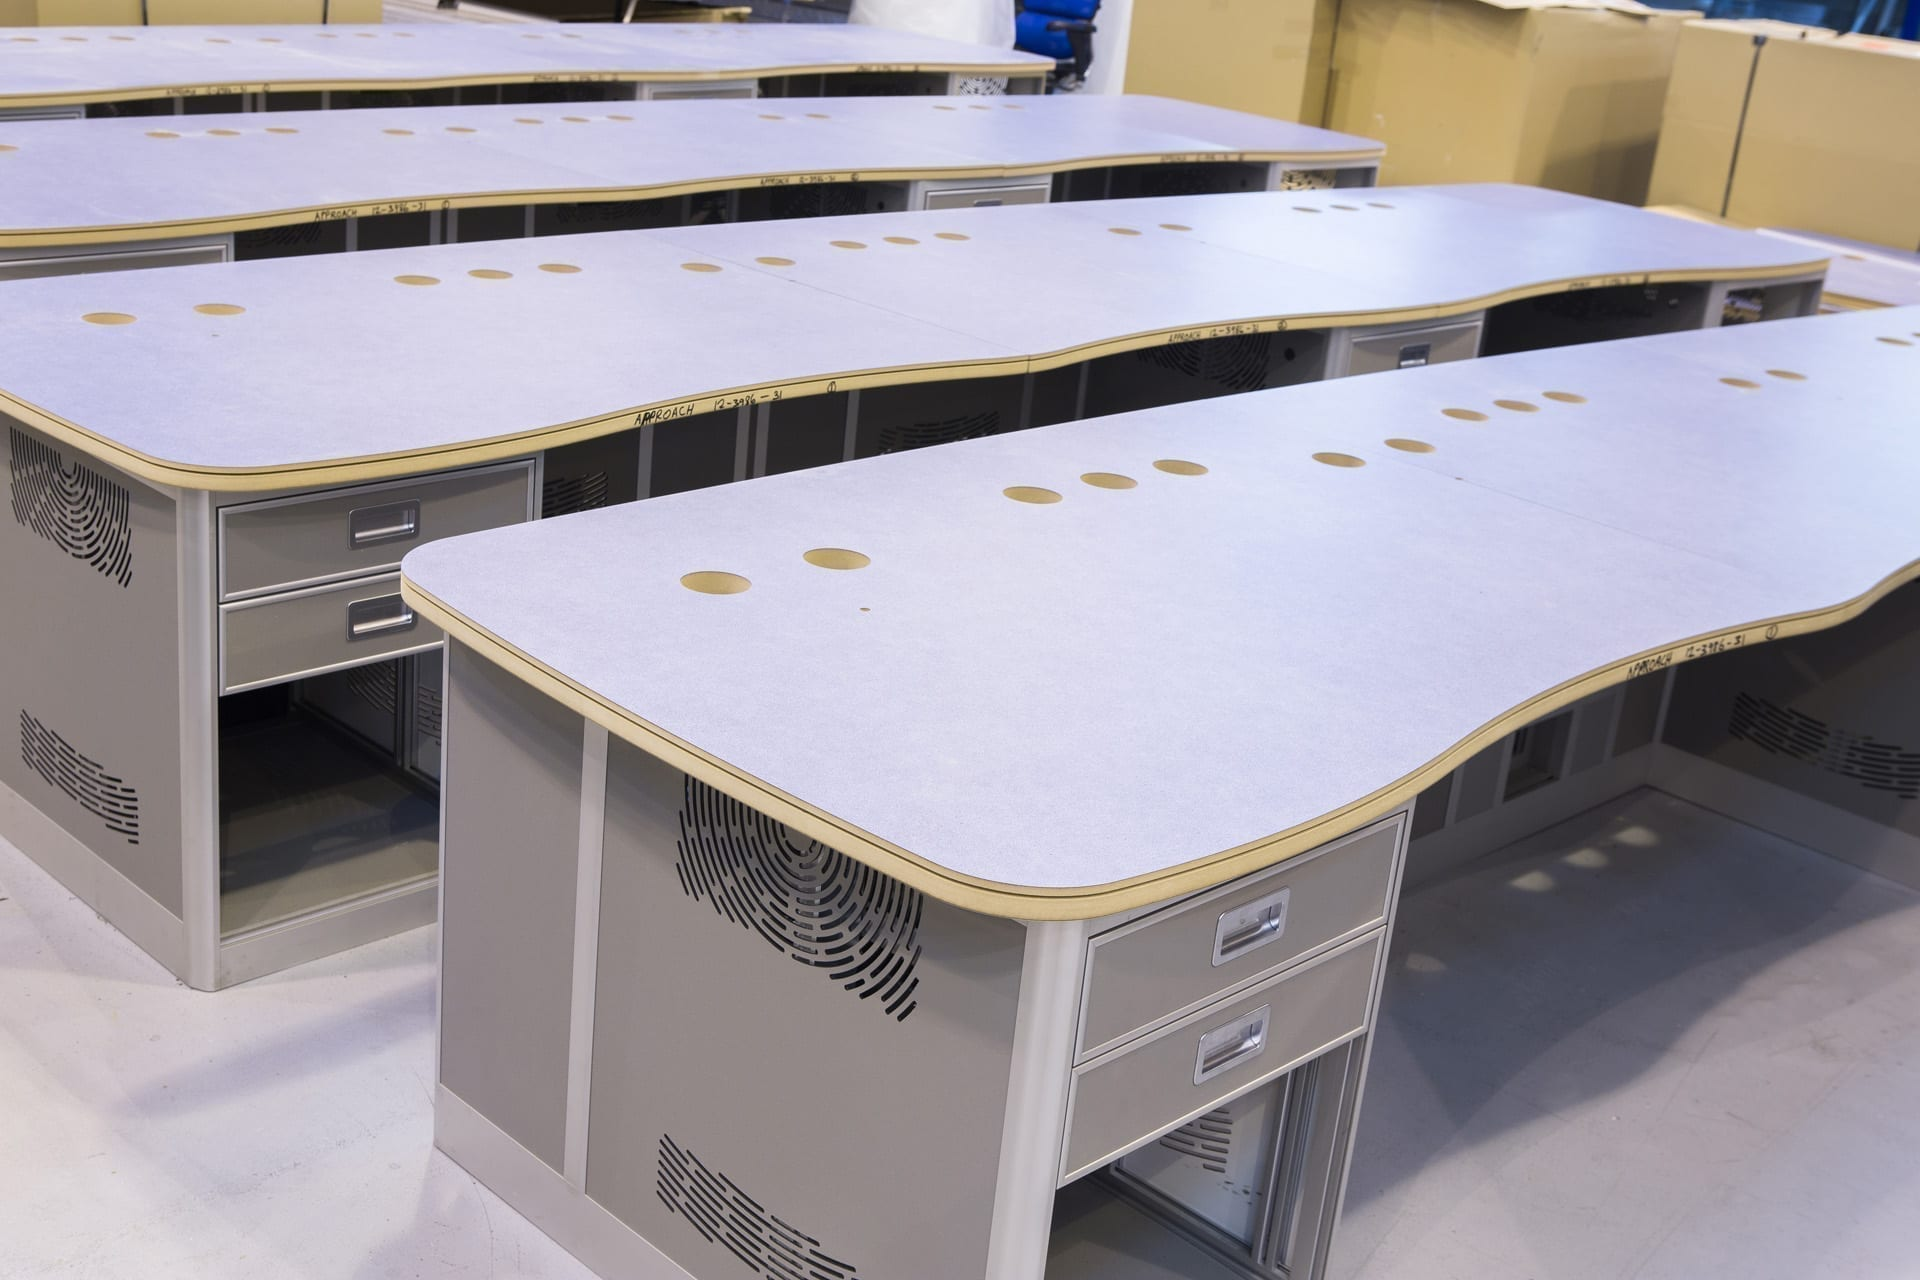 multiple desks factory image